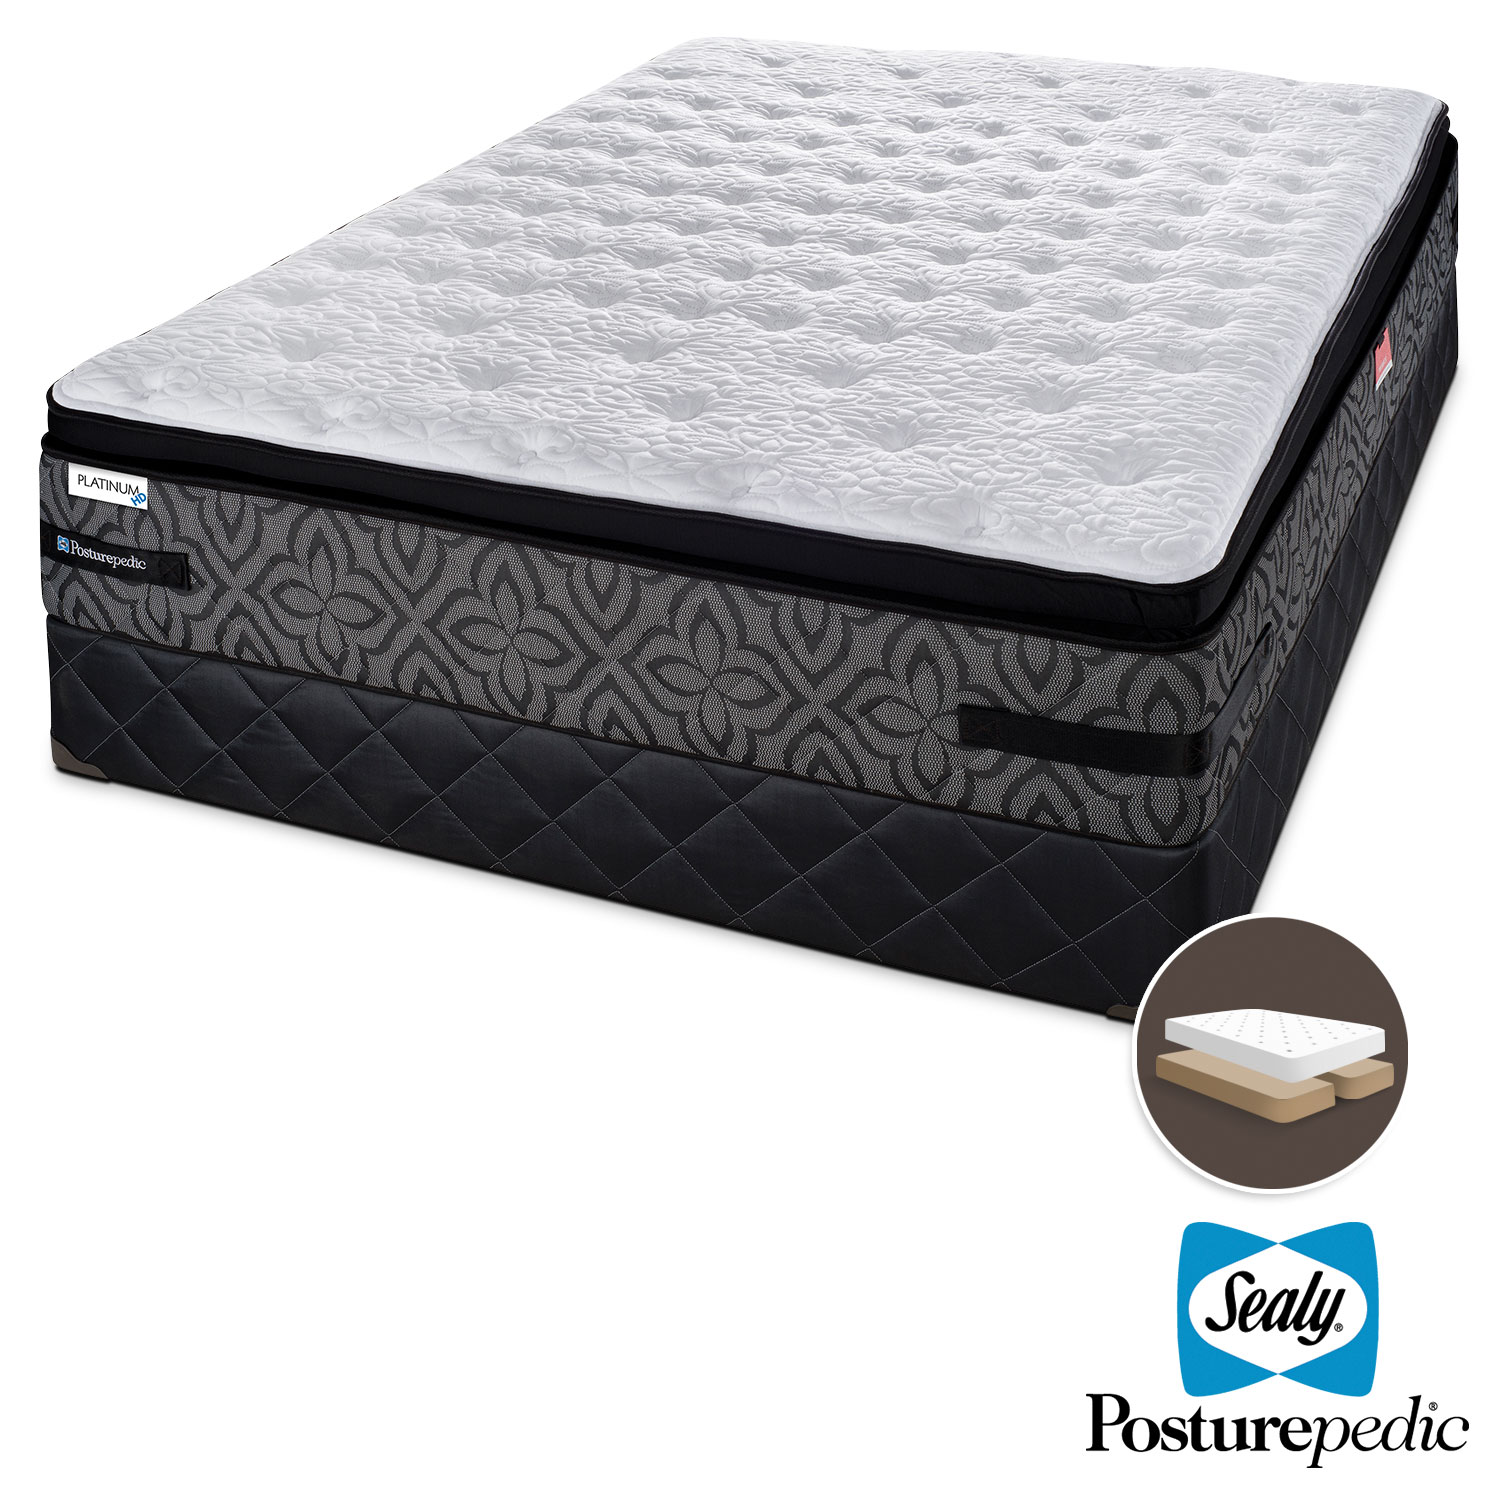 Mattresses and Bedding - Sealy Posturepedic 2 K Firm King Mattress and Split Boxspring Set